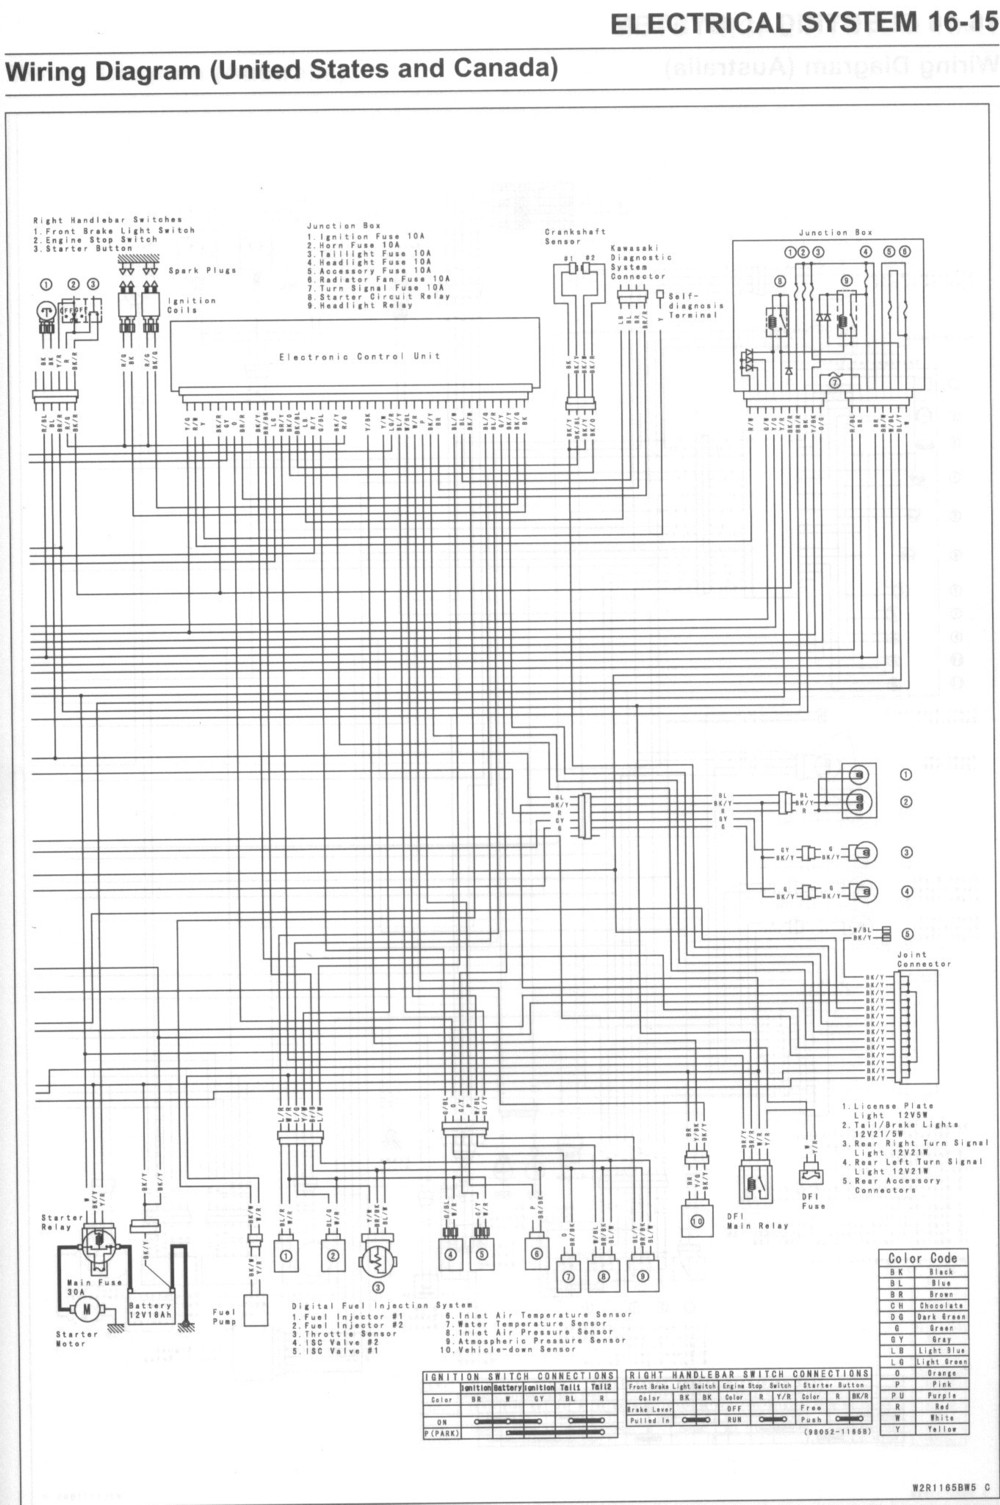 medium resolution of kawasaki vn 1500 wiring diagram wiring diagram sys kawasaki nomad 1500 wiring diagram kawasaki 1500 wiring diagram